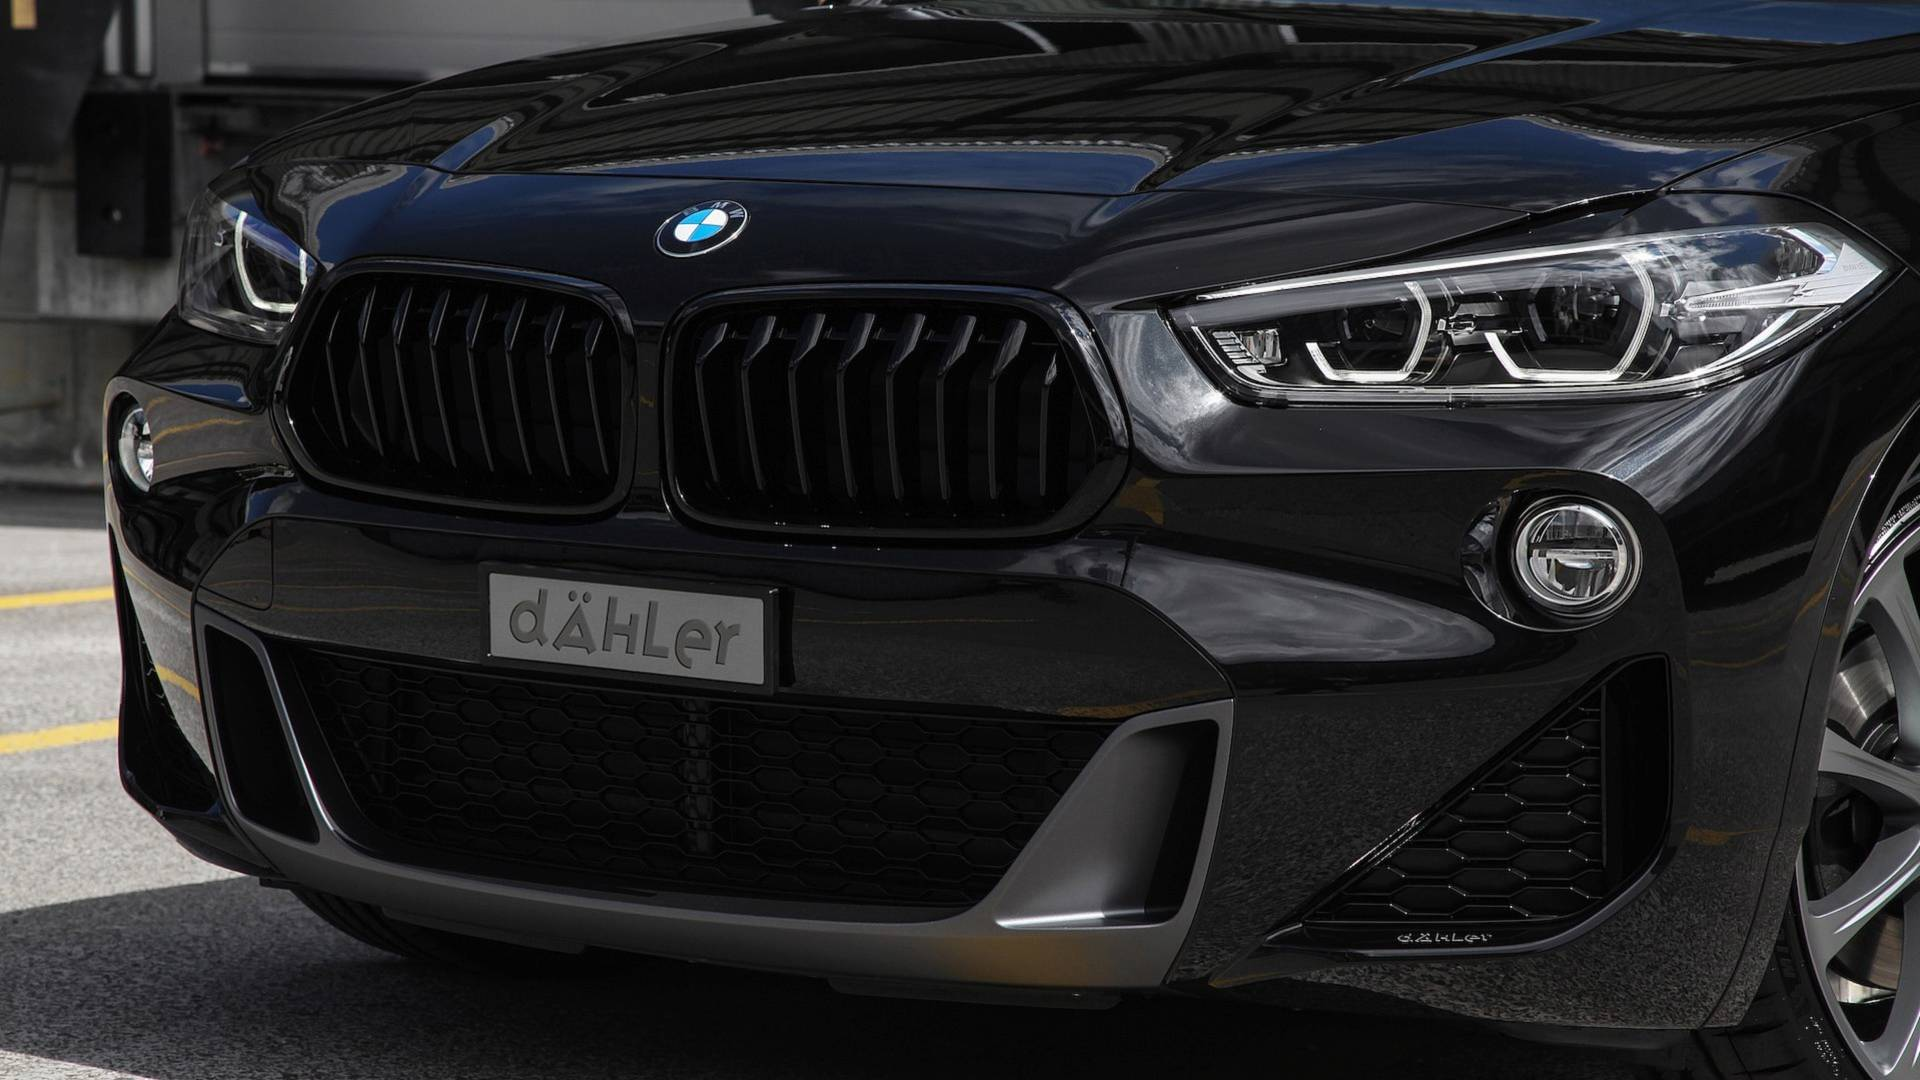 BMW X2 by Dahler (5)